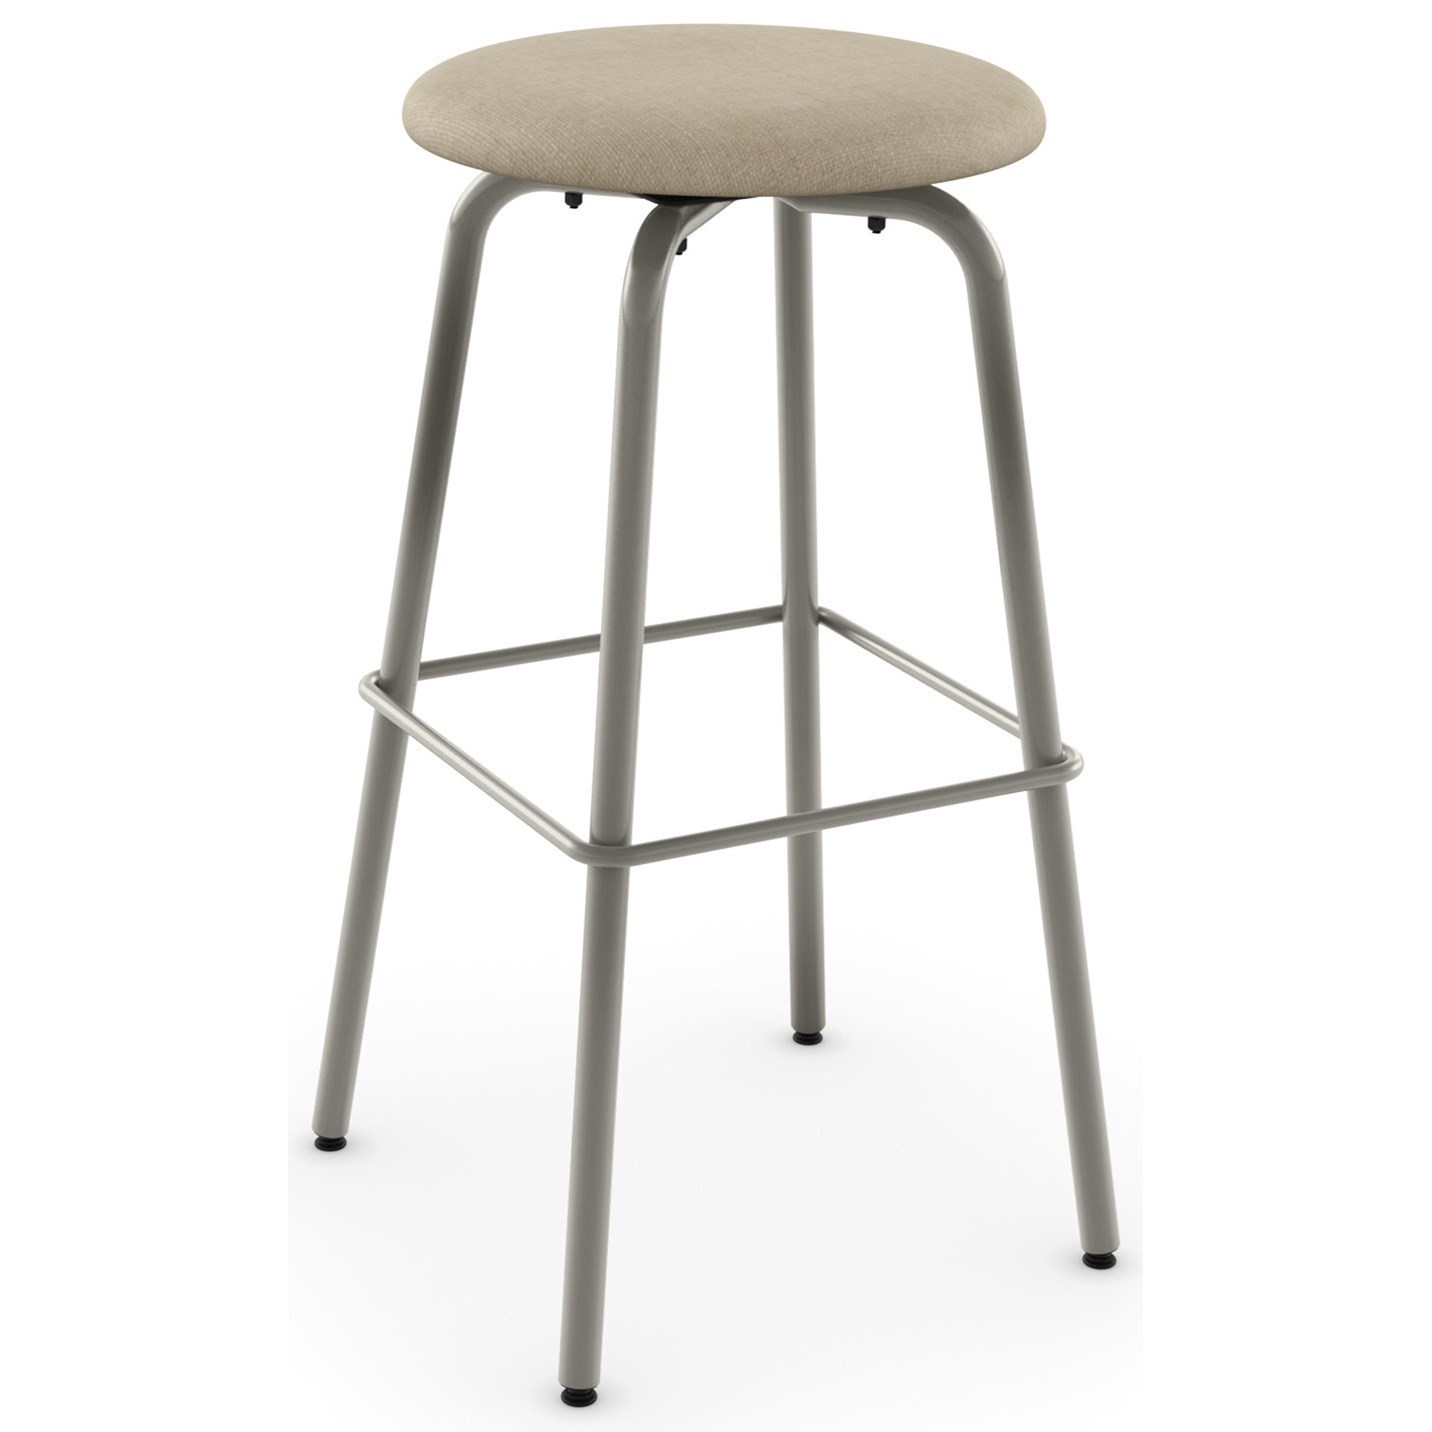 "Eco 34"" Button Spectator Height Swivel Stool by Amisco at Jordan's Home Furnishings"